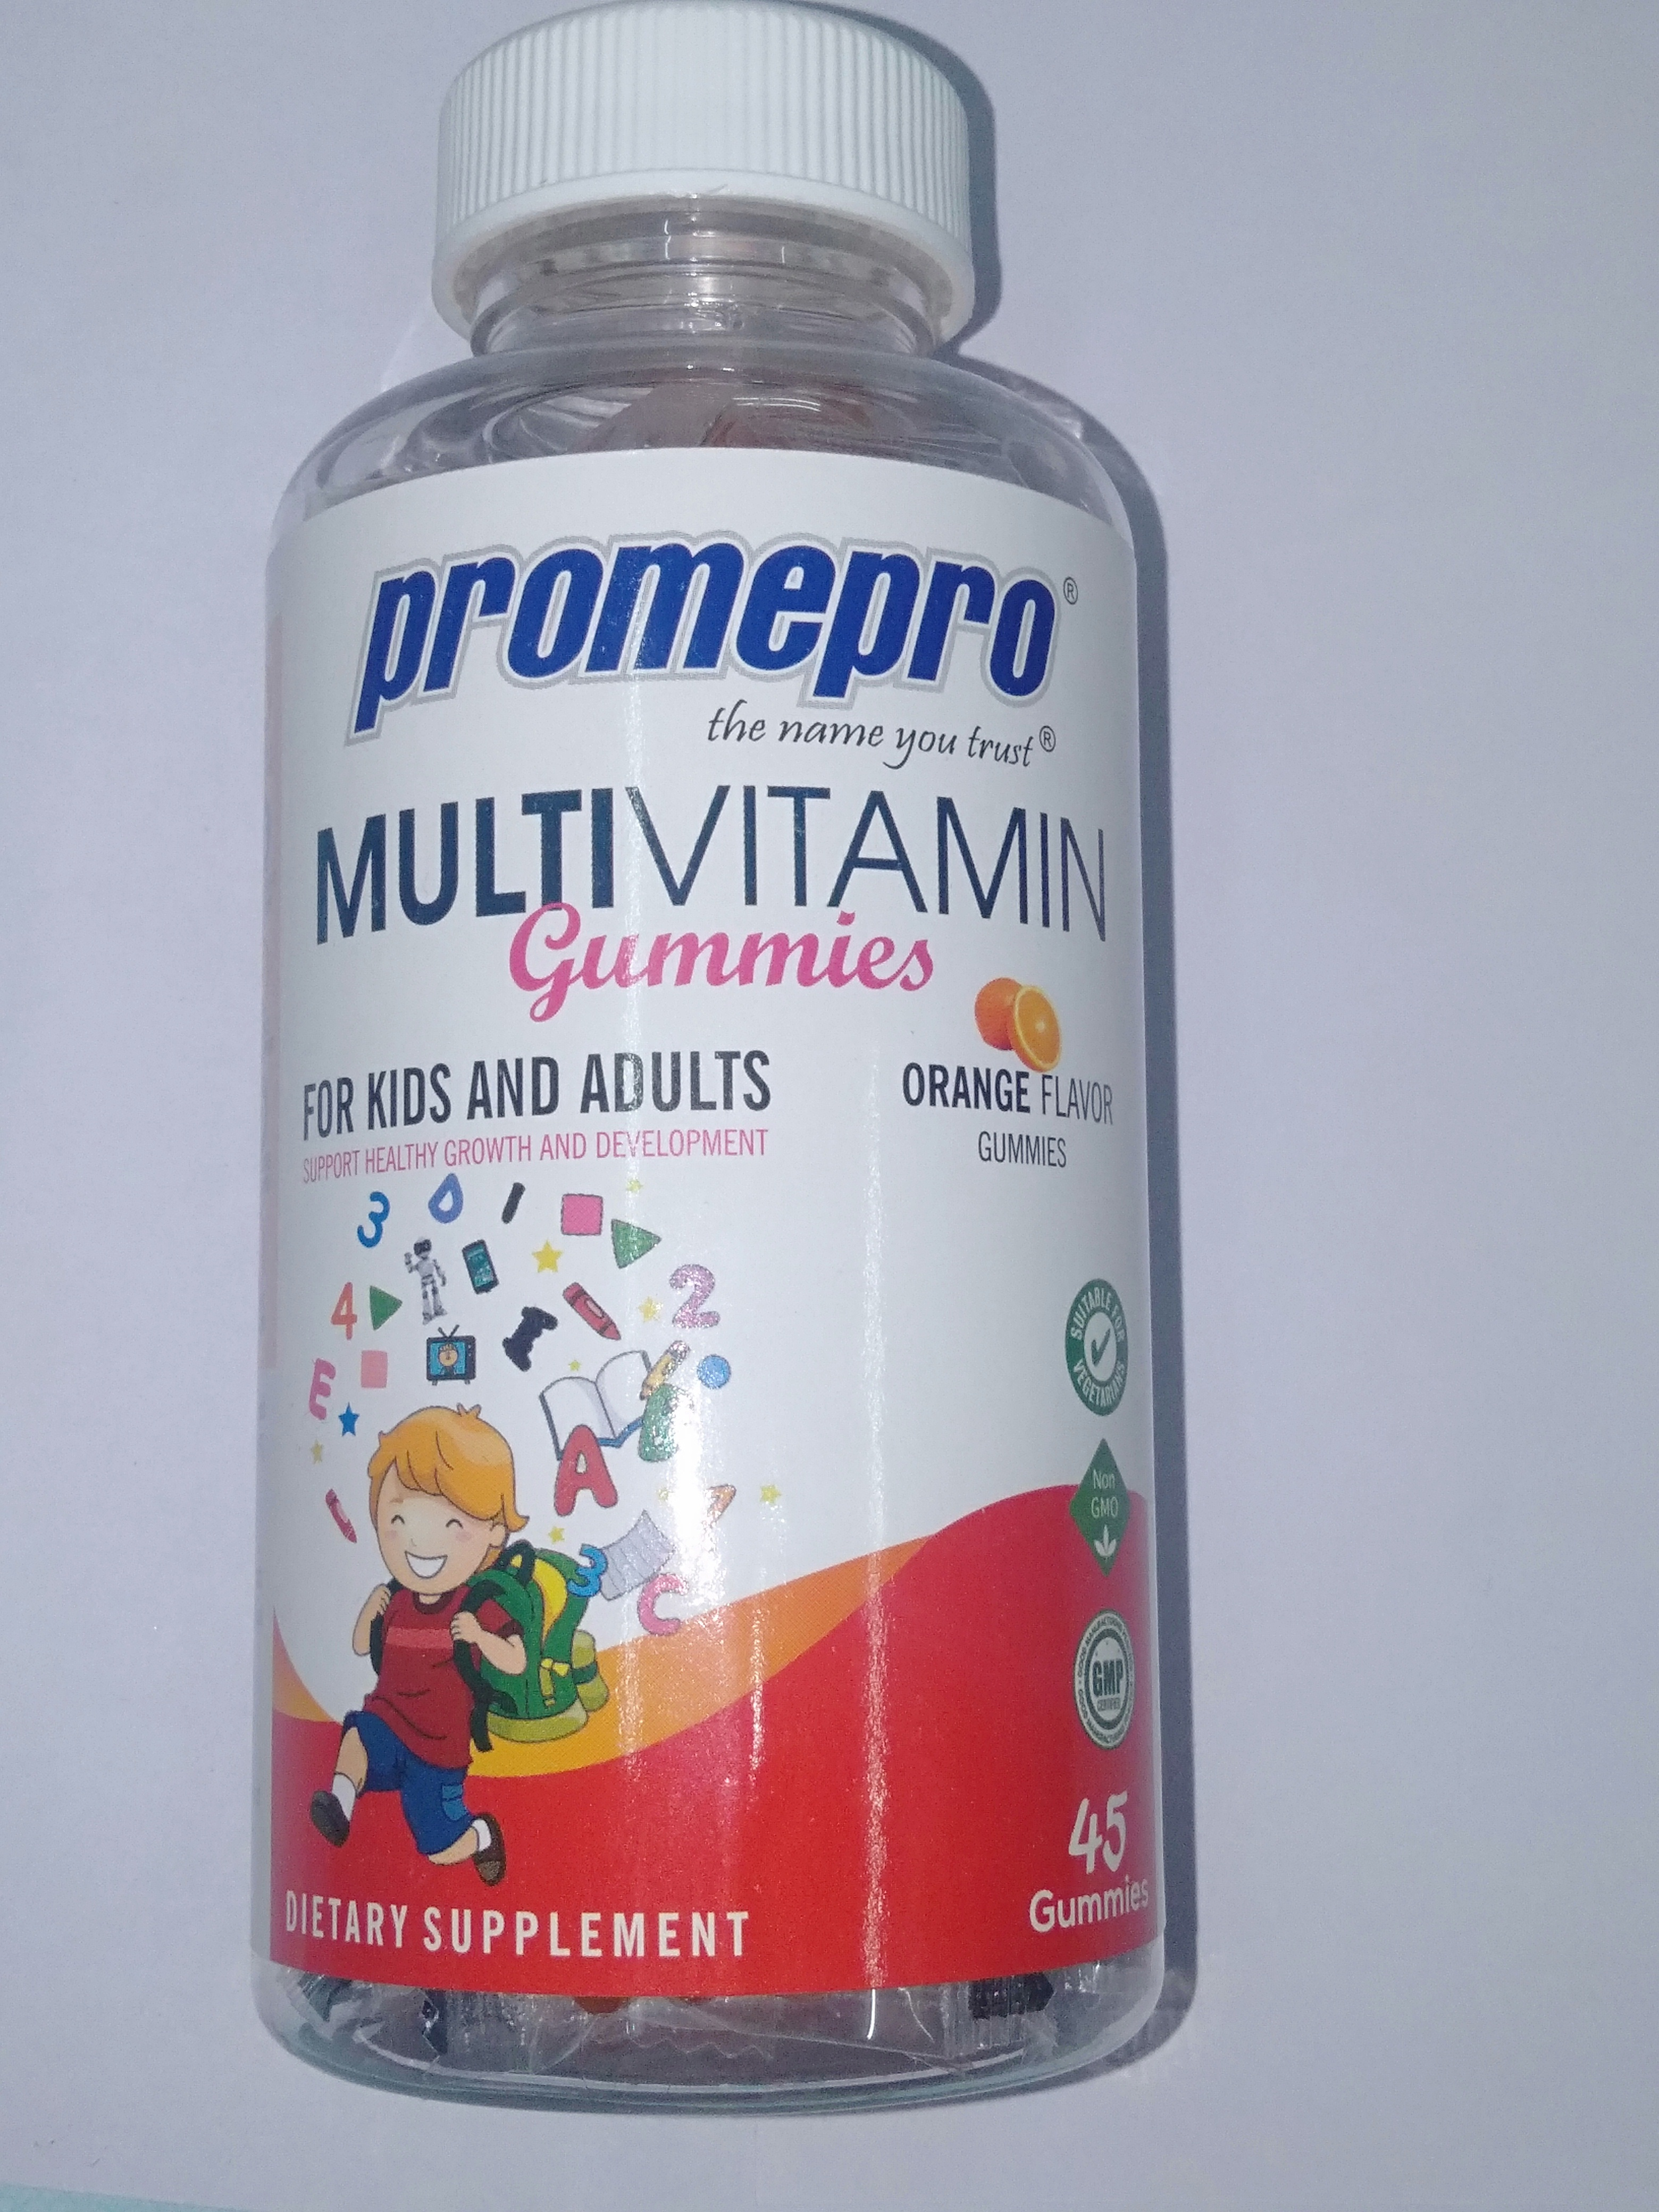 Promepro MULTIVITAMIN ORANGE FLAVOR GUMMIES FOR KIDS AND ADULTS,45 GUMMIES